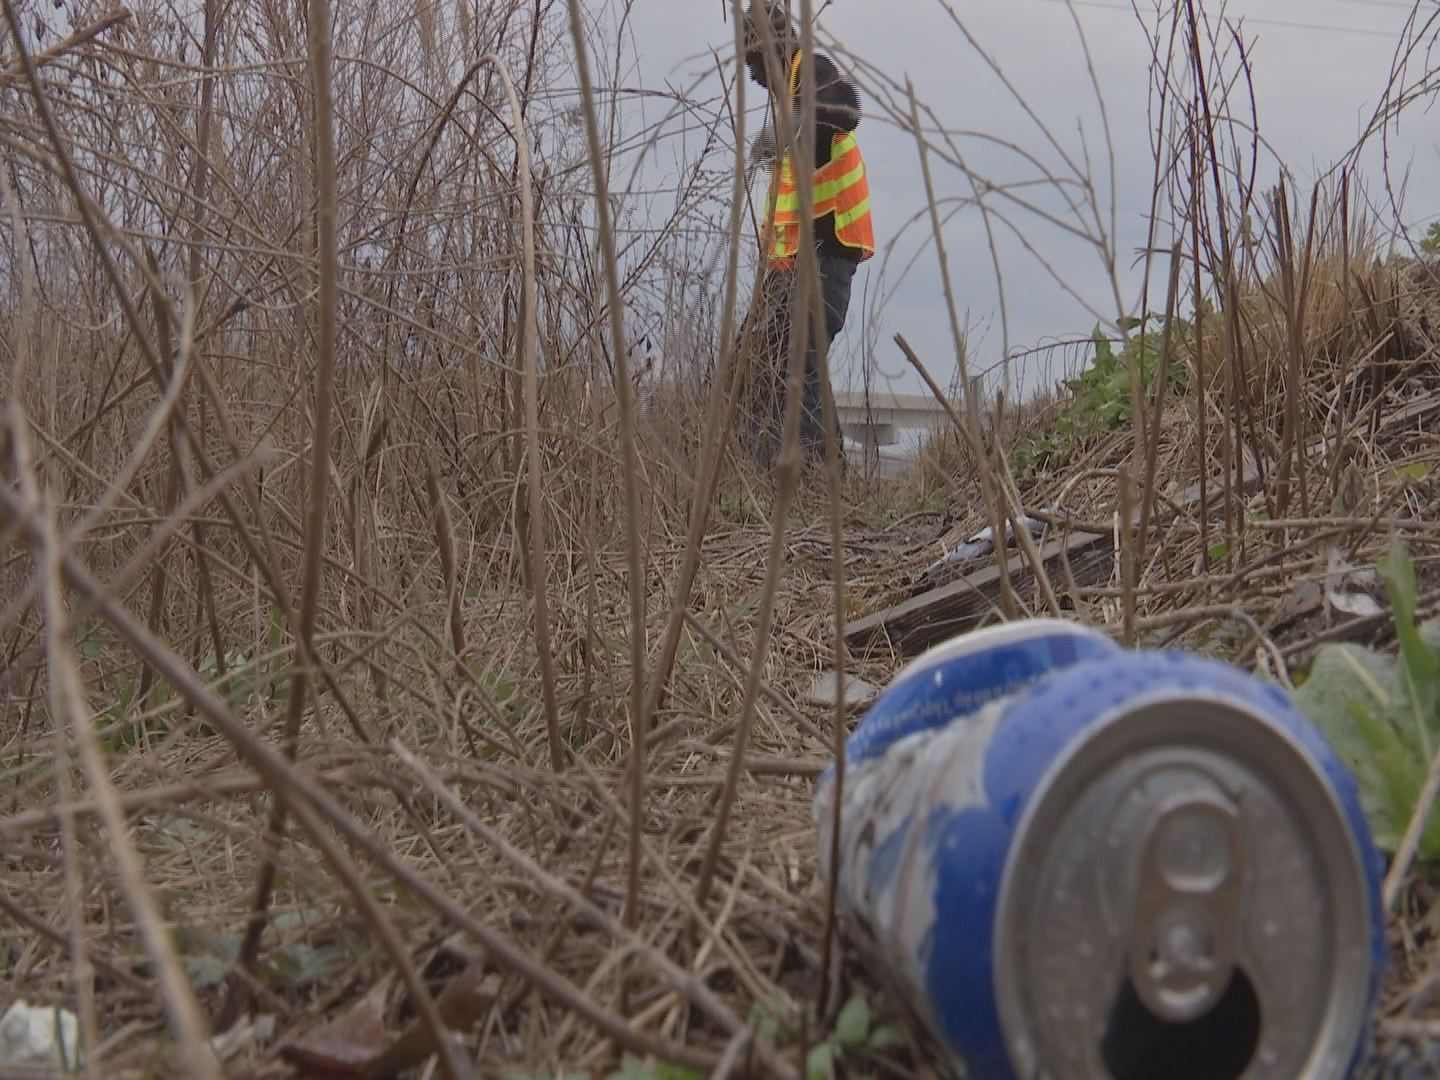 72 littering tickets issued, but Horry County's fight against litter far from over (Image 1)_52336